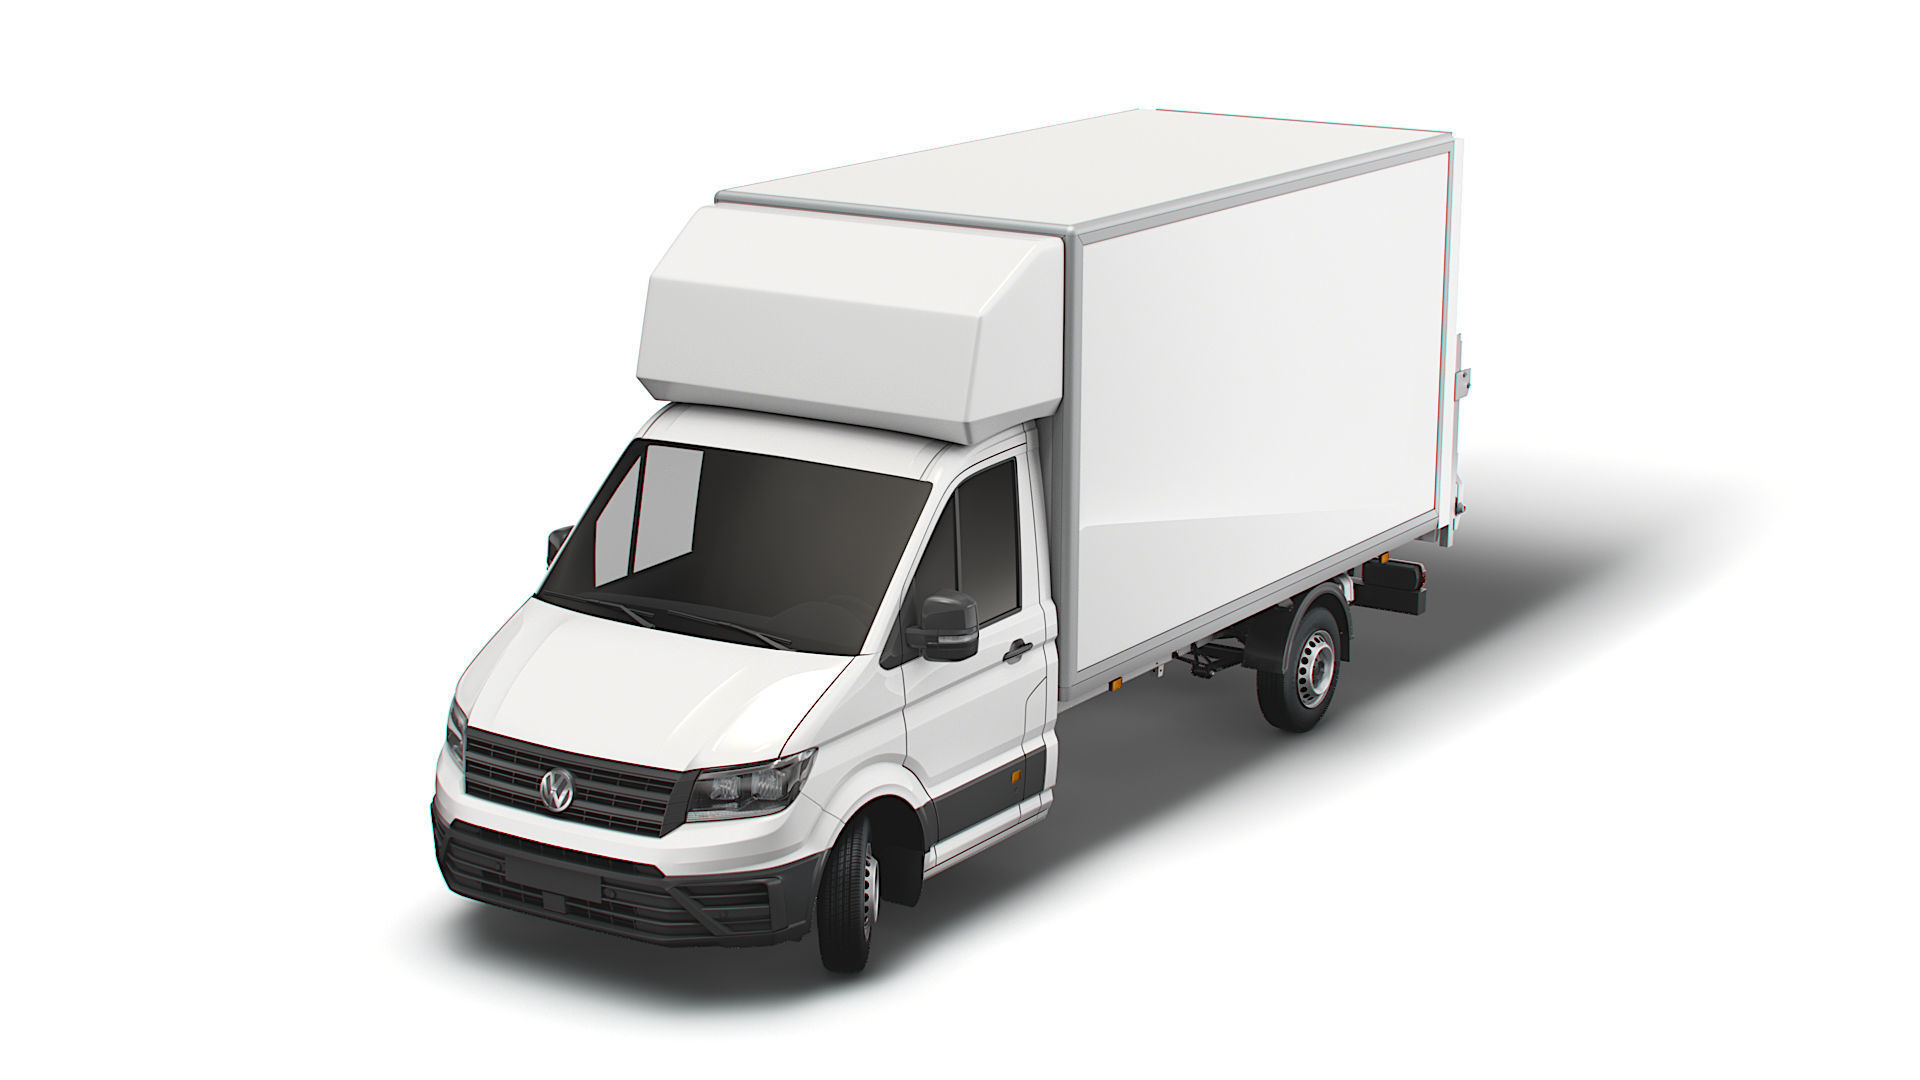 VW Crafter Luton Tail Lift 2021